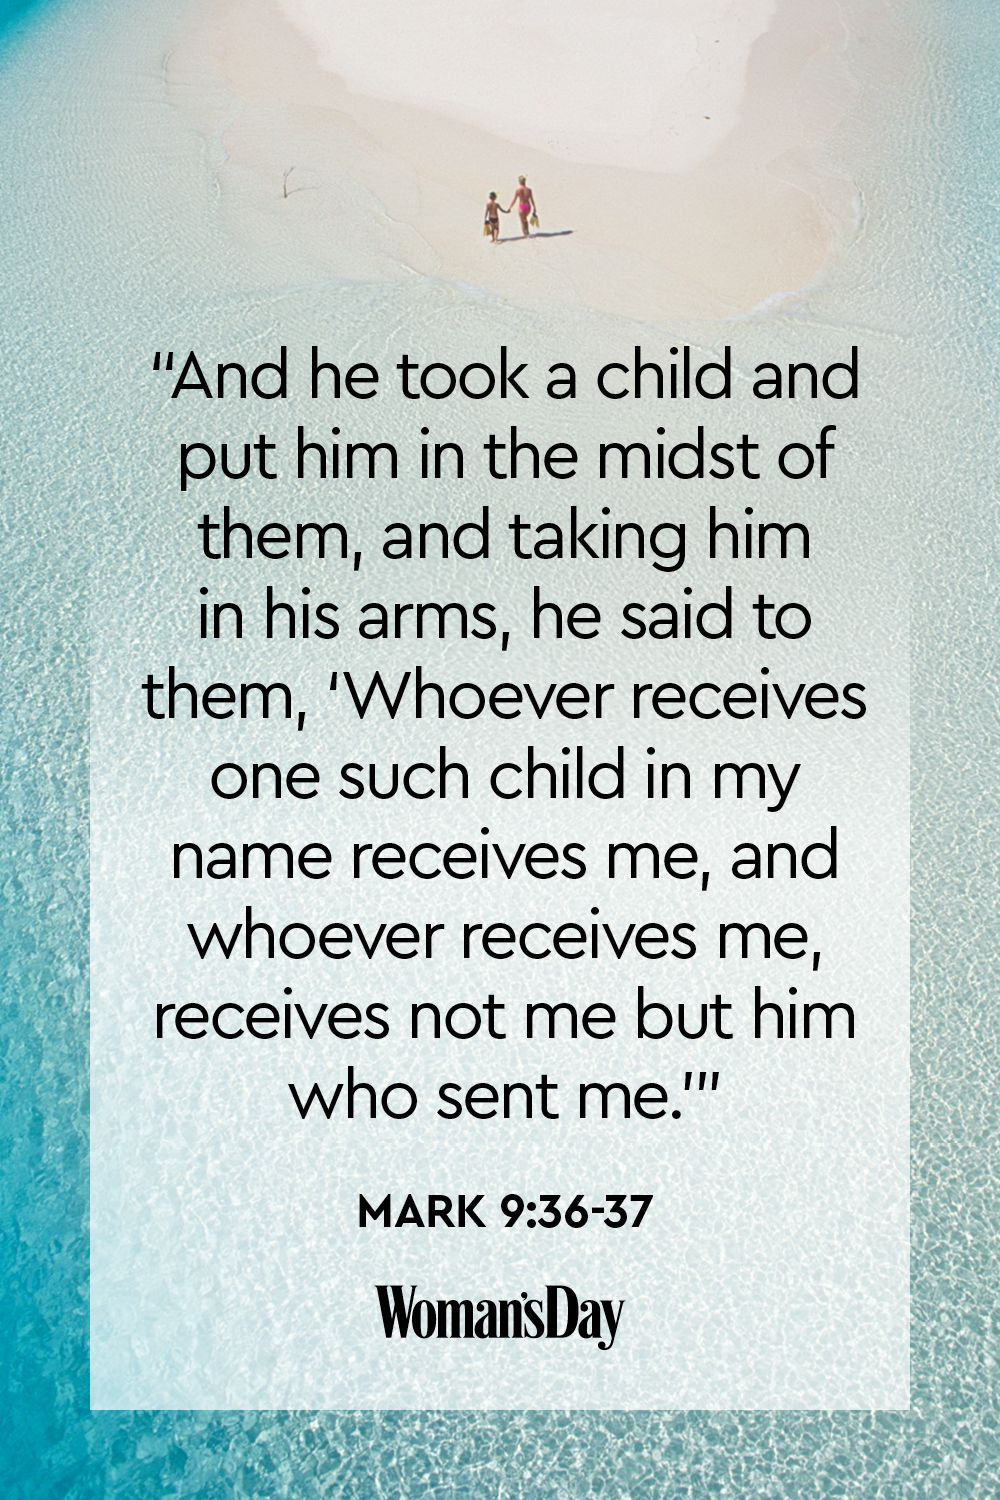 Bible verses on respecting adults